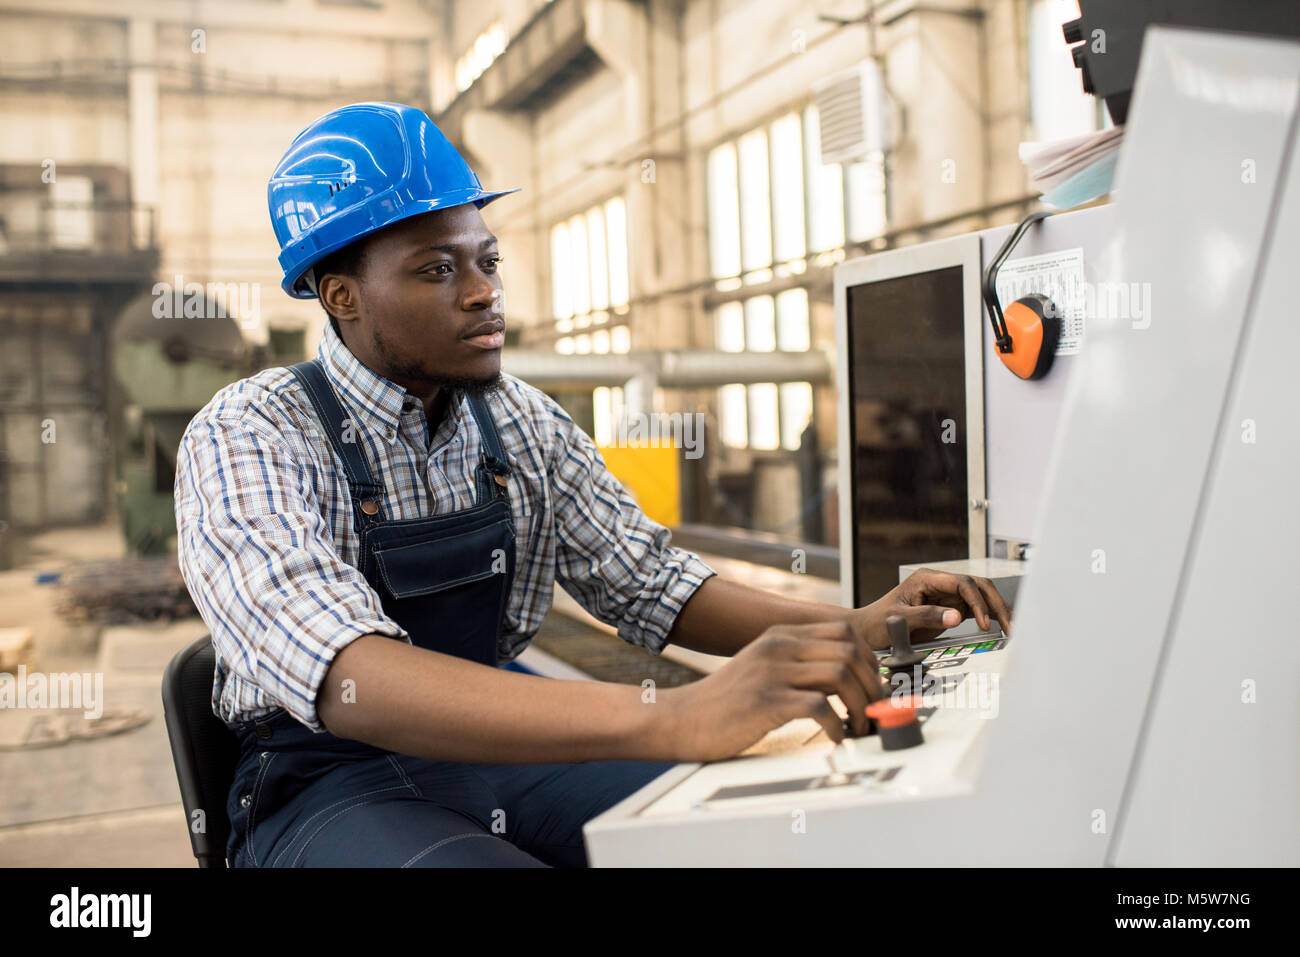 Portrait shot of highly professional worker wearing checked shirt and overall operating machine at production department - Stock Image